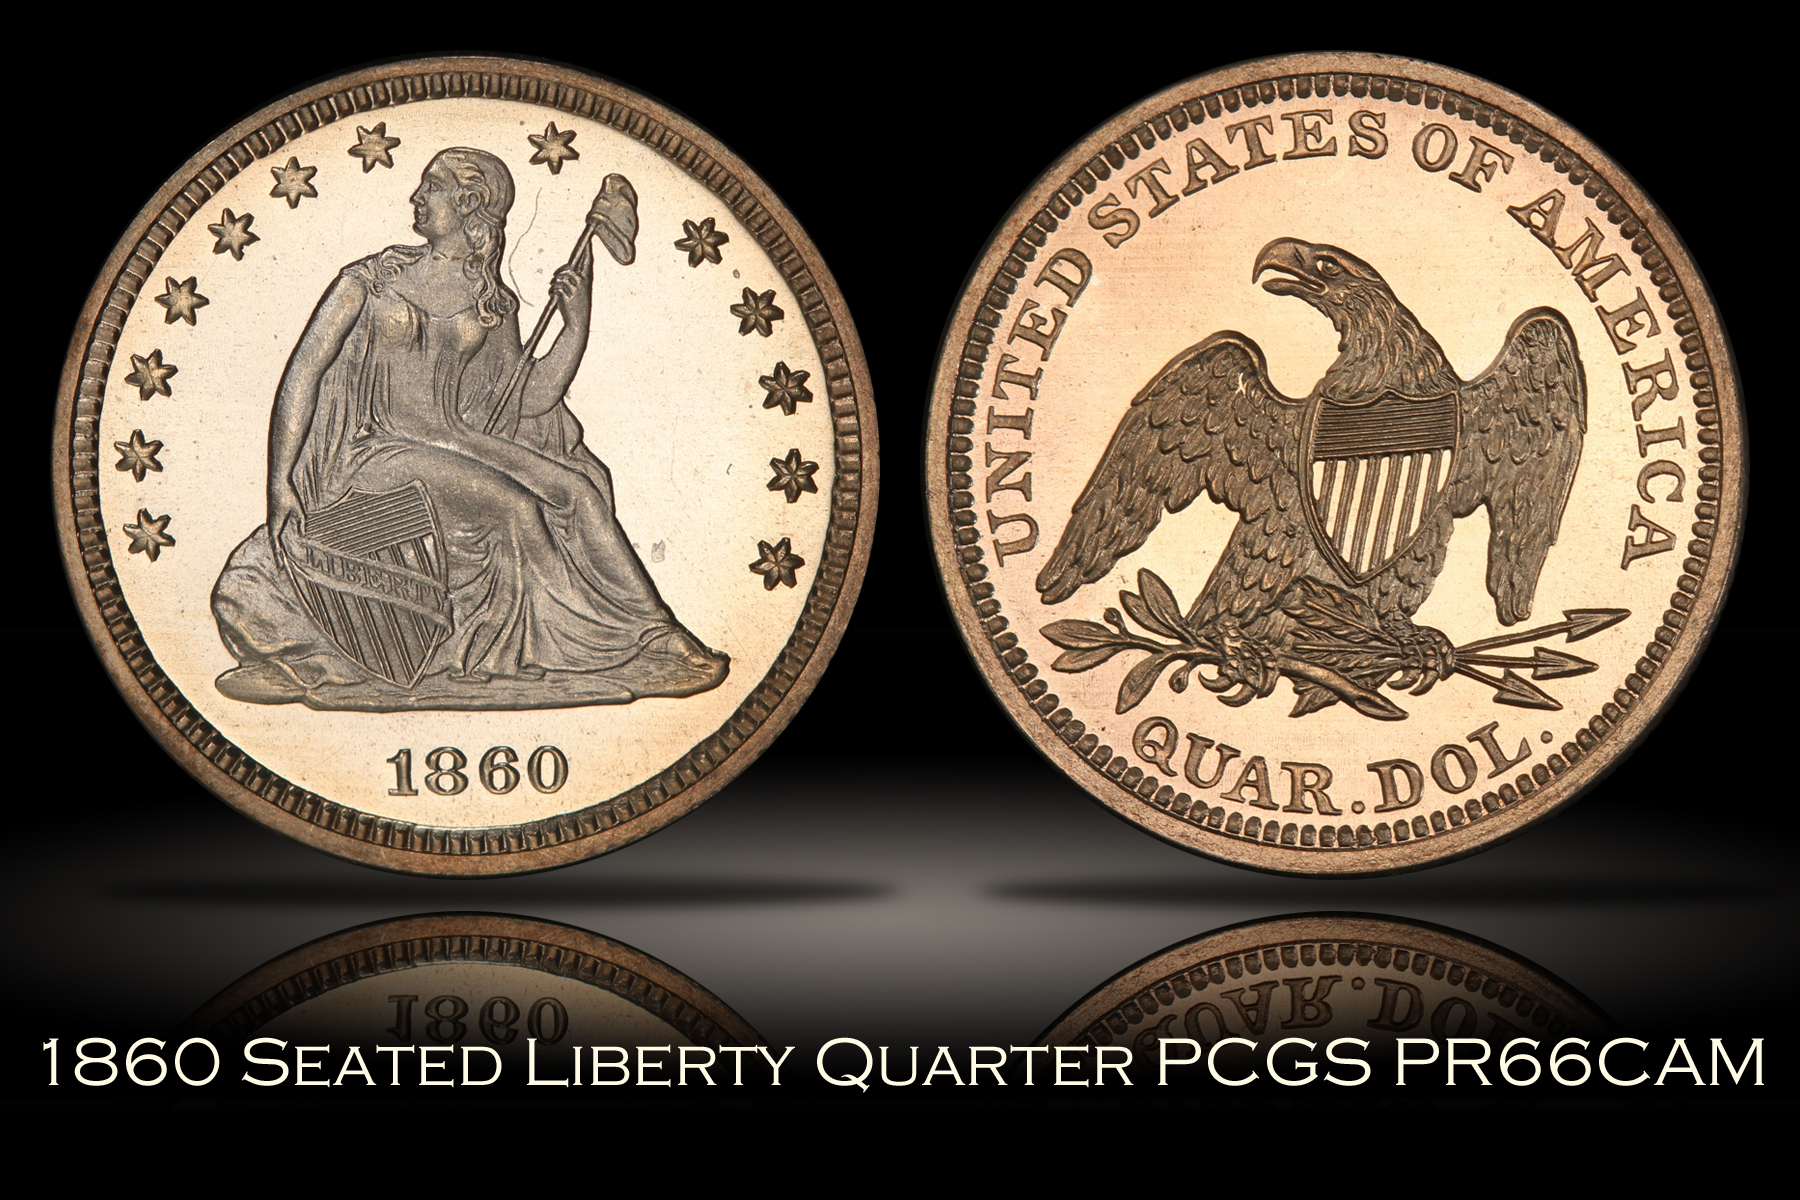 1860 Proof Seated Liberty Quarter PCGS PR66CAM